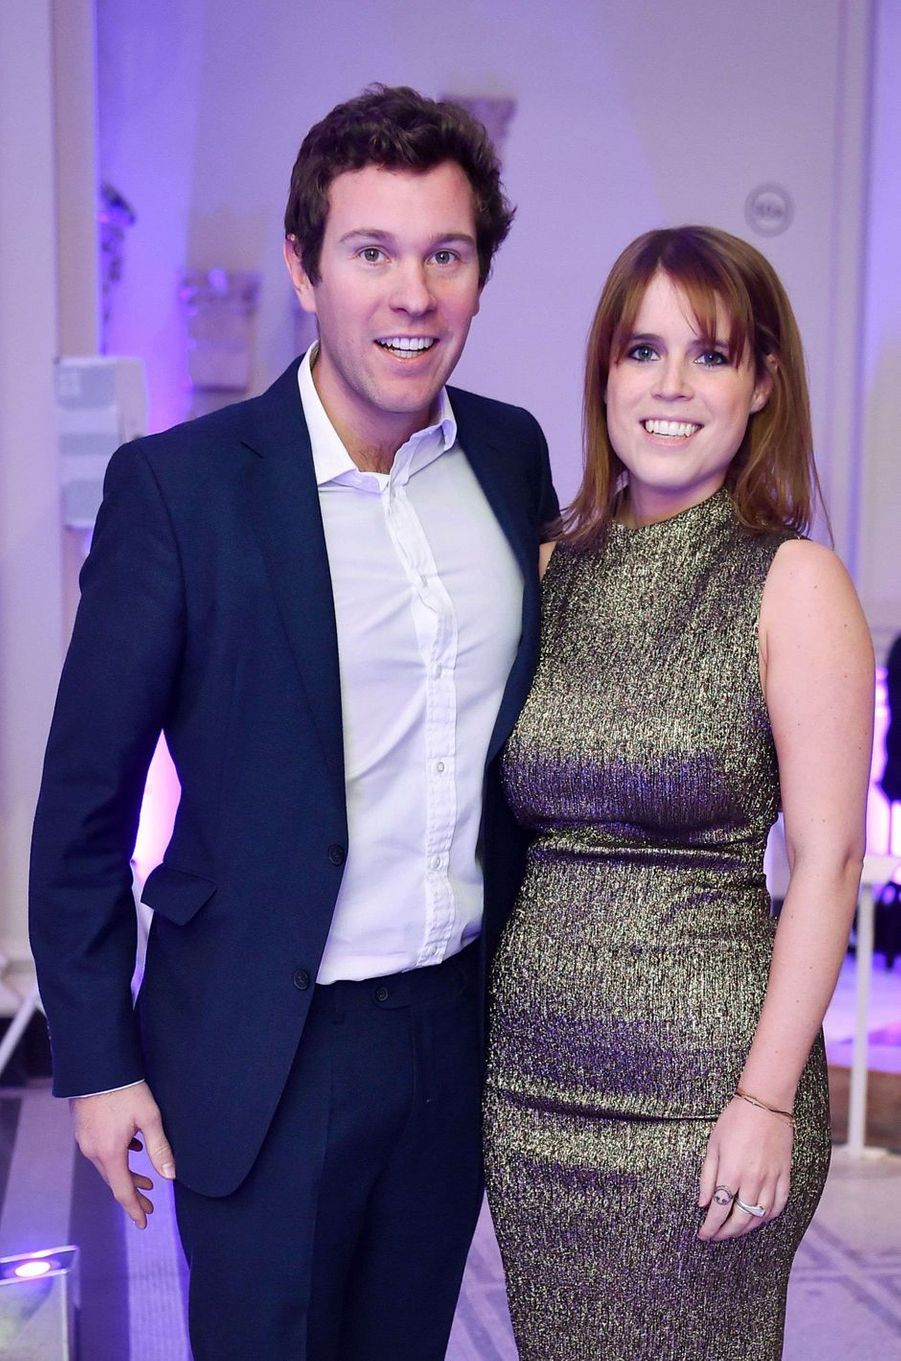 La princesse Eugenie d'York et Jack Brooksbank, le 25 octobre 2016